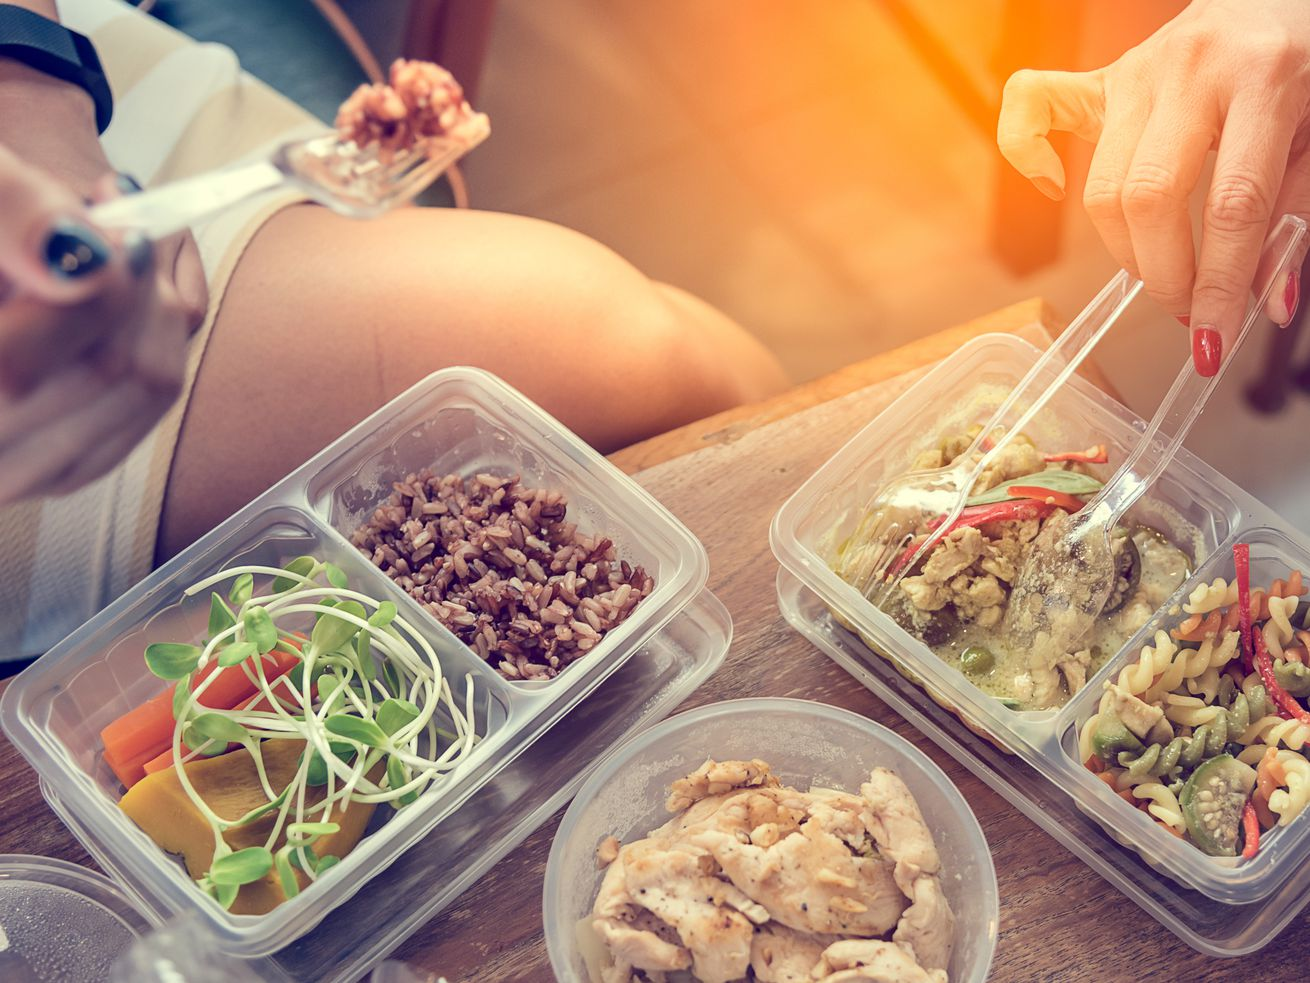 Many people store their lunches and leftovers in plastic — but don't realize there's plastic in their food.